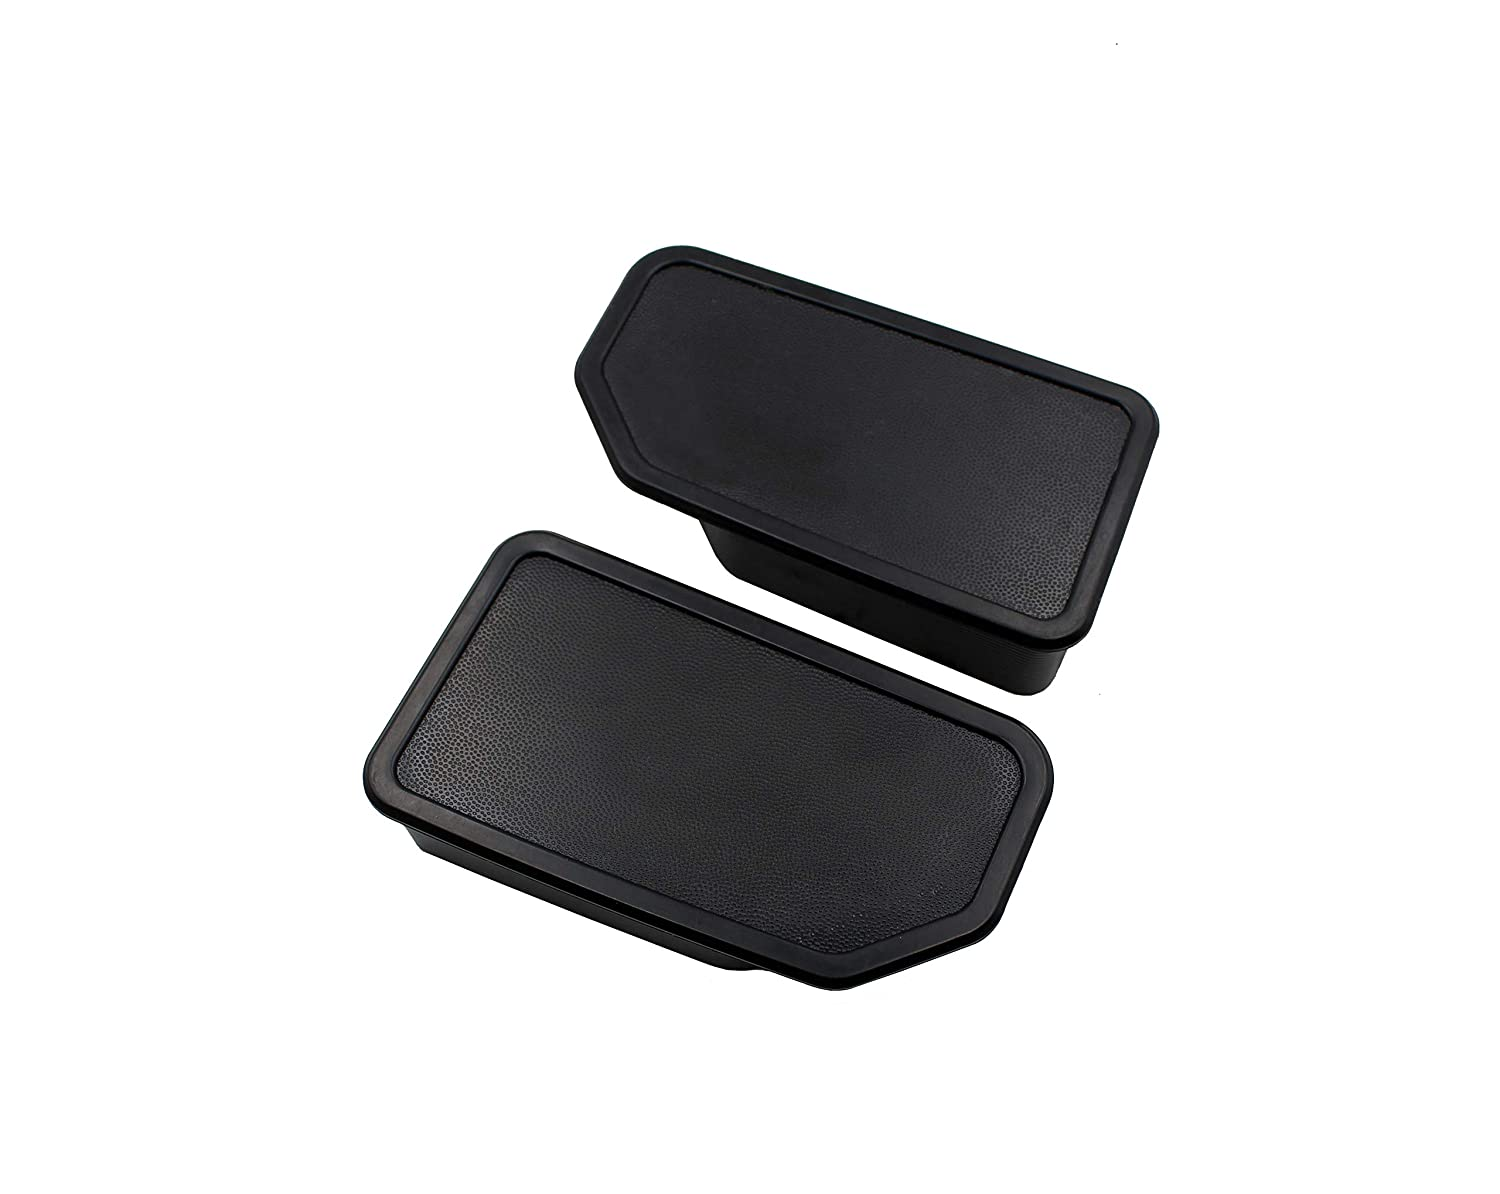 Truck Bed Rail Stake Pocket Covers//Stake odd shaped Hole Plugs for 2014-2018 Chevy Silverado 1500 2500 2500HD 3500 and GMC Sierra 1500 Set of 2